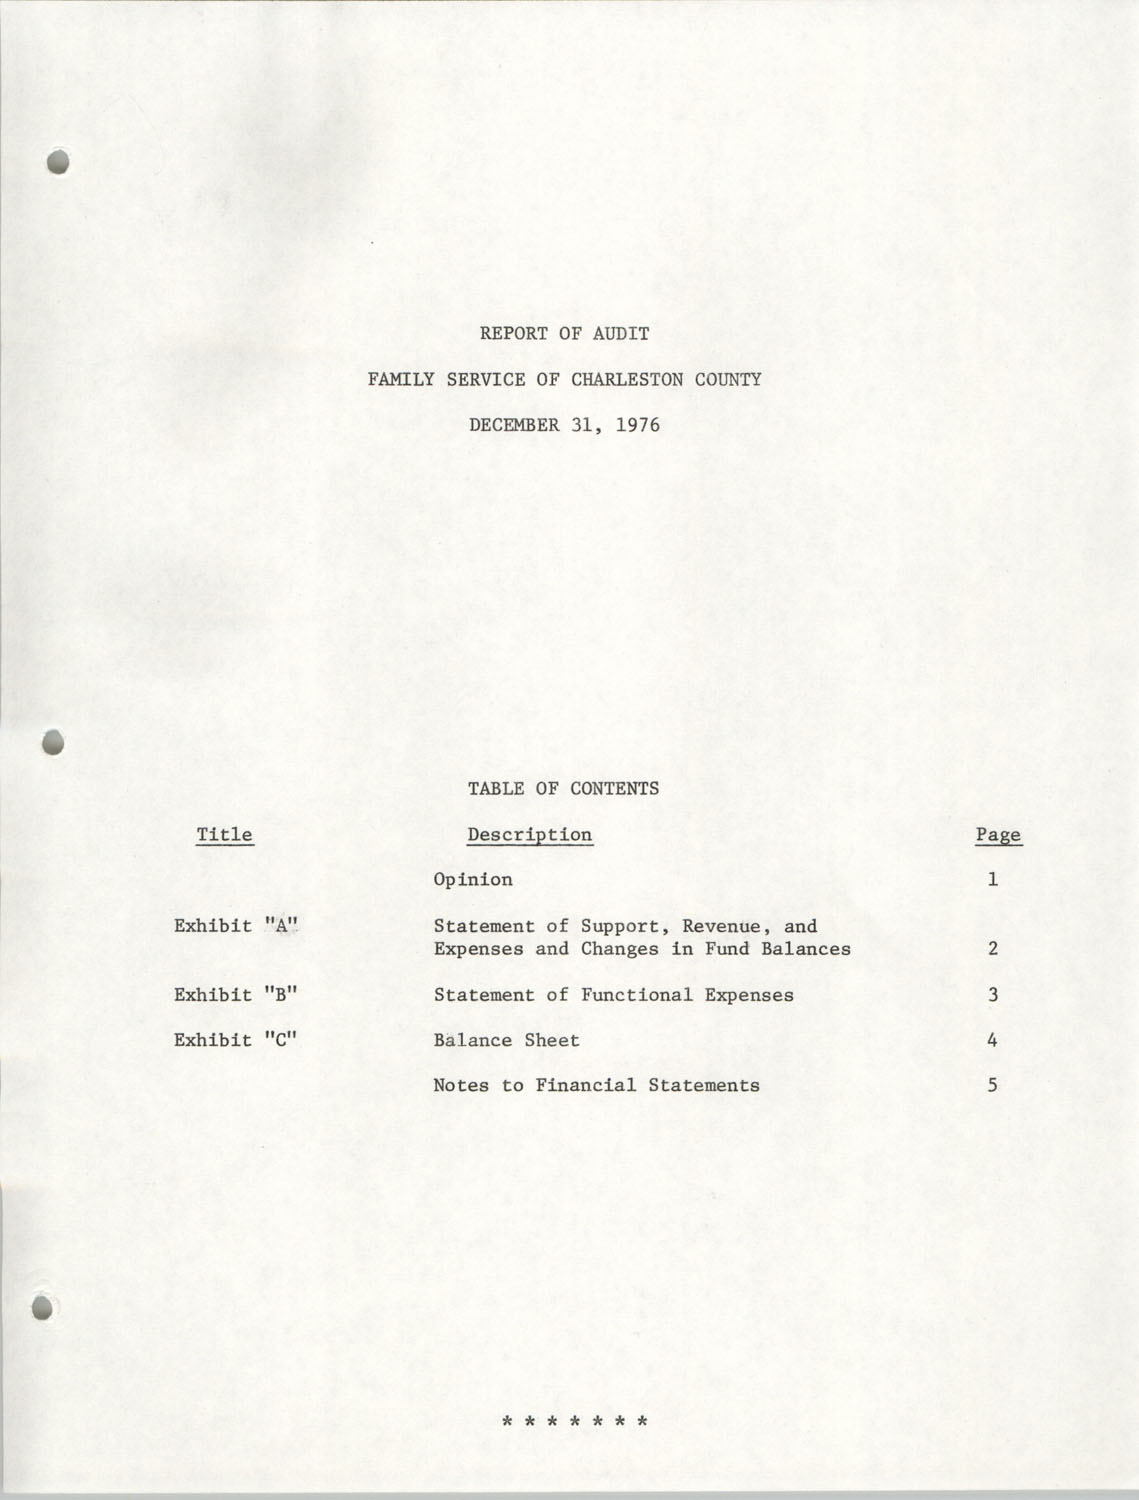 Report of Audit, Family Service of Charleston County, December 31, 1976